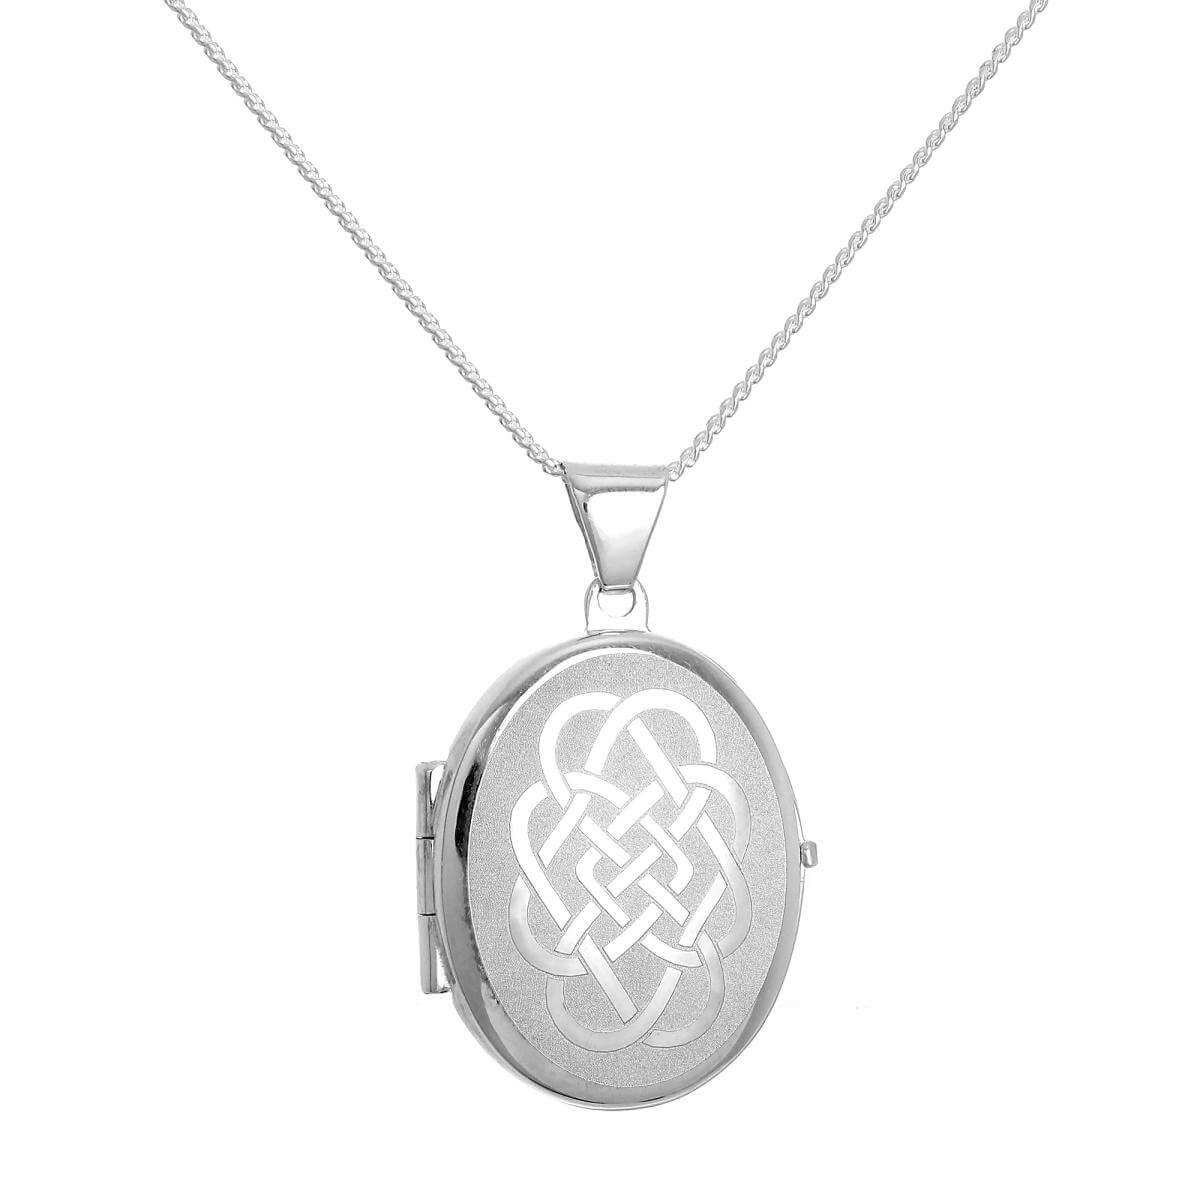 Matt Sterling Silver Oval Locket with Celtic Knot Design on Chain